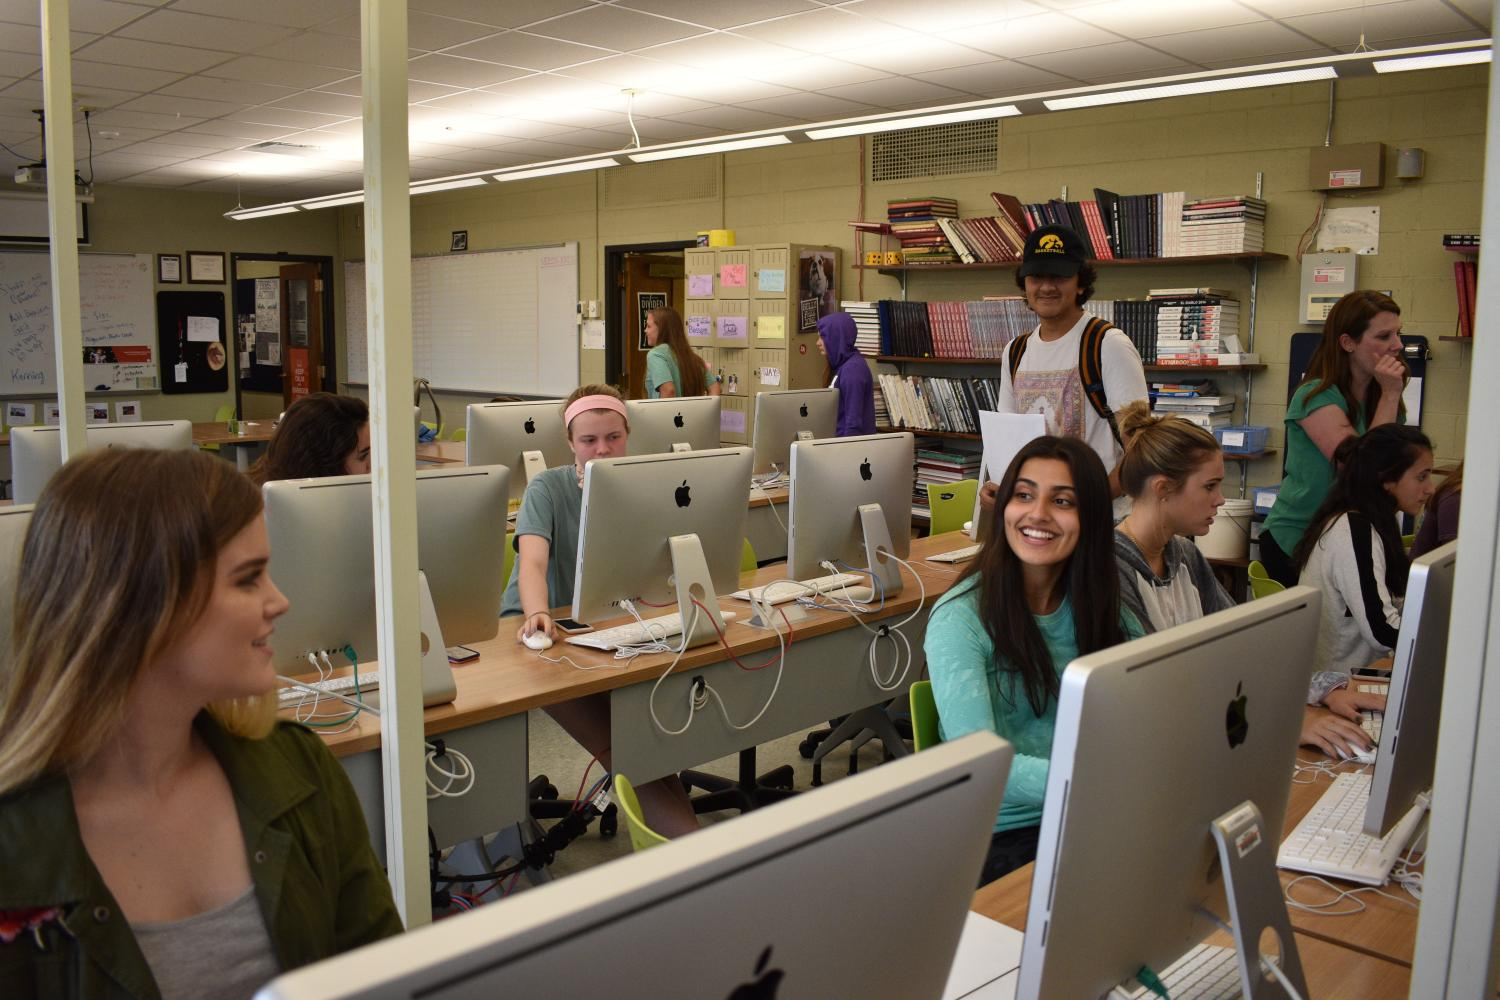 The El Diablo staff worked on the yearbook until 5:30 p.m. on Oct. 3, revising their sections, sharing feedback, hanging out with each other, and celebrating their first deadline.